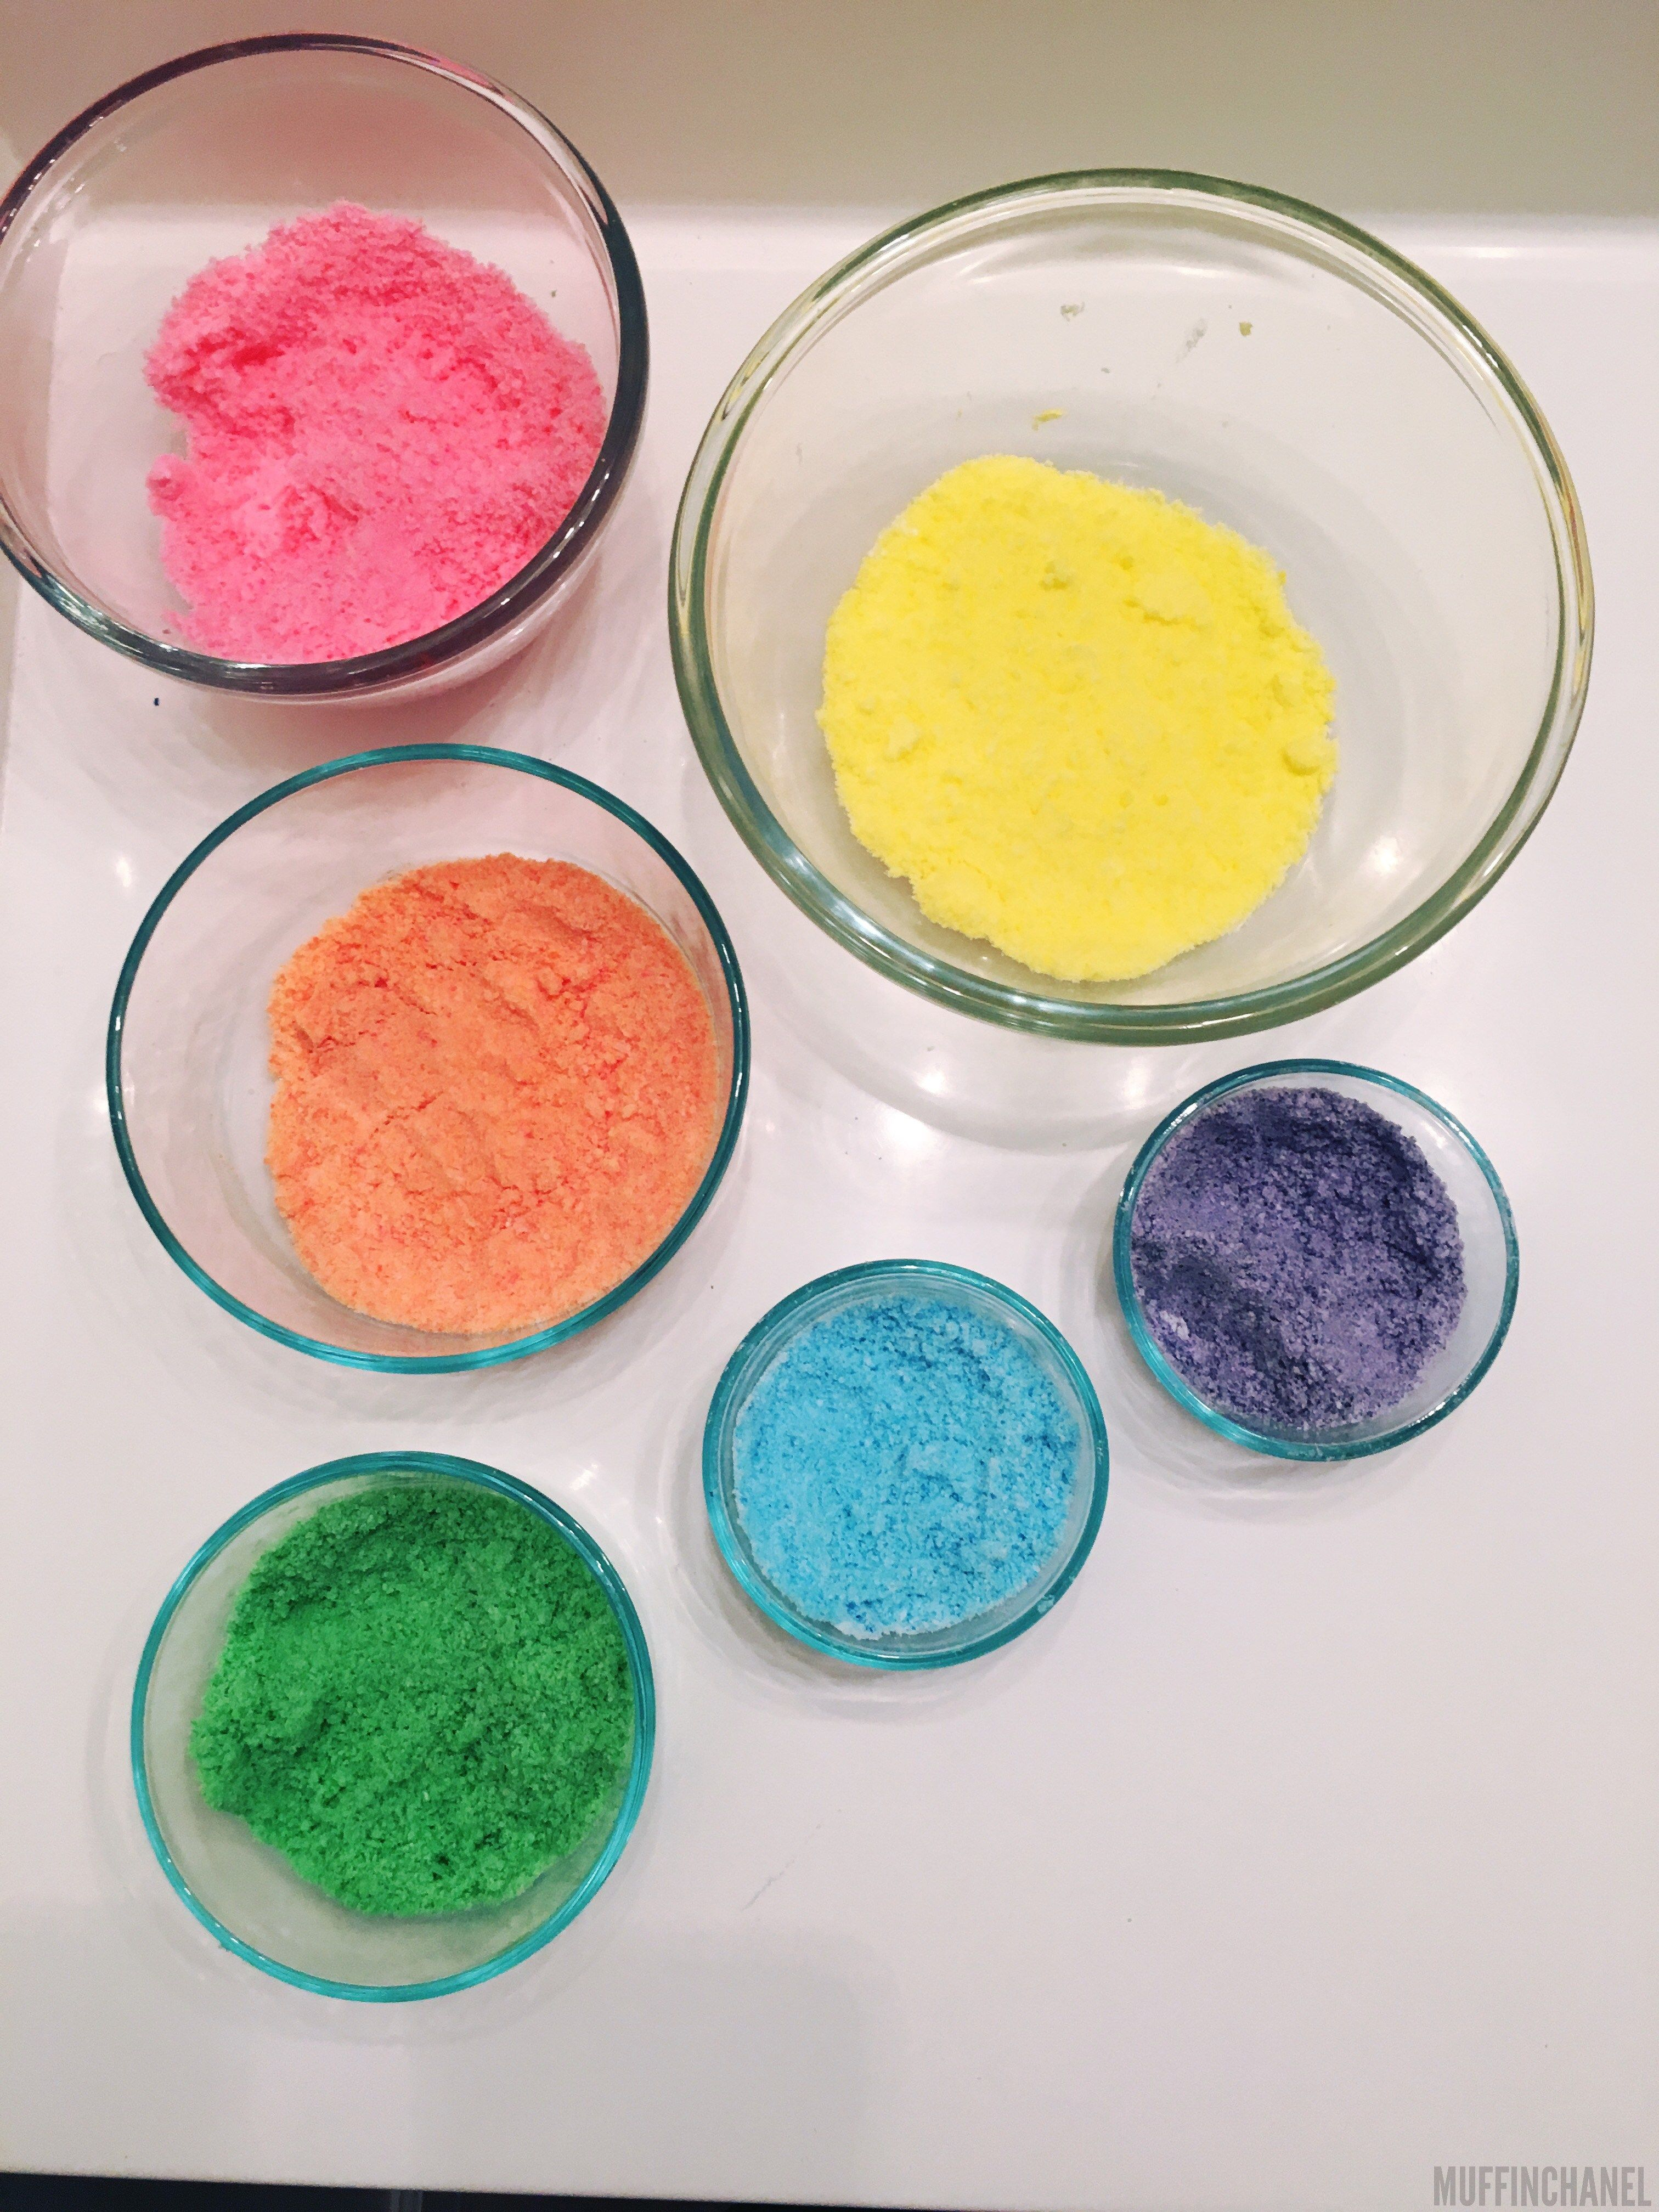 Make Your Own Bath Bombs Diy Lush Bath Bombs Diy